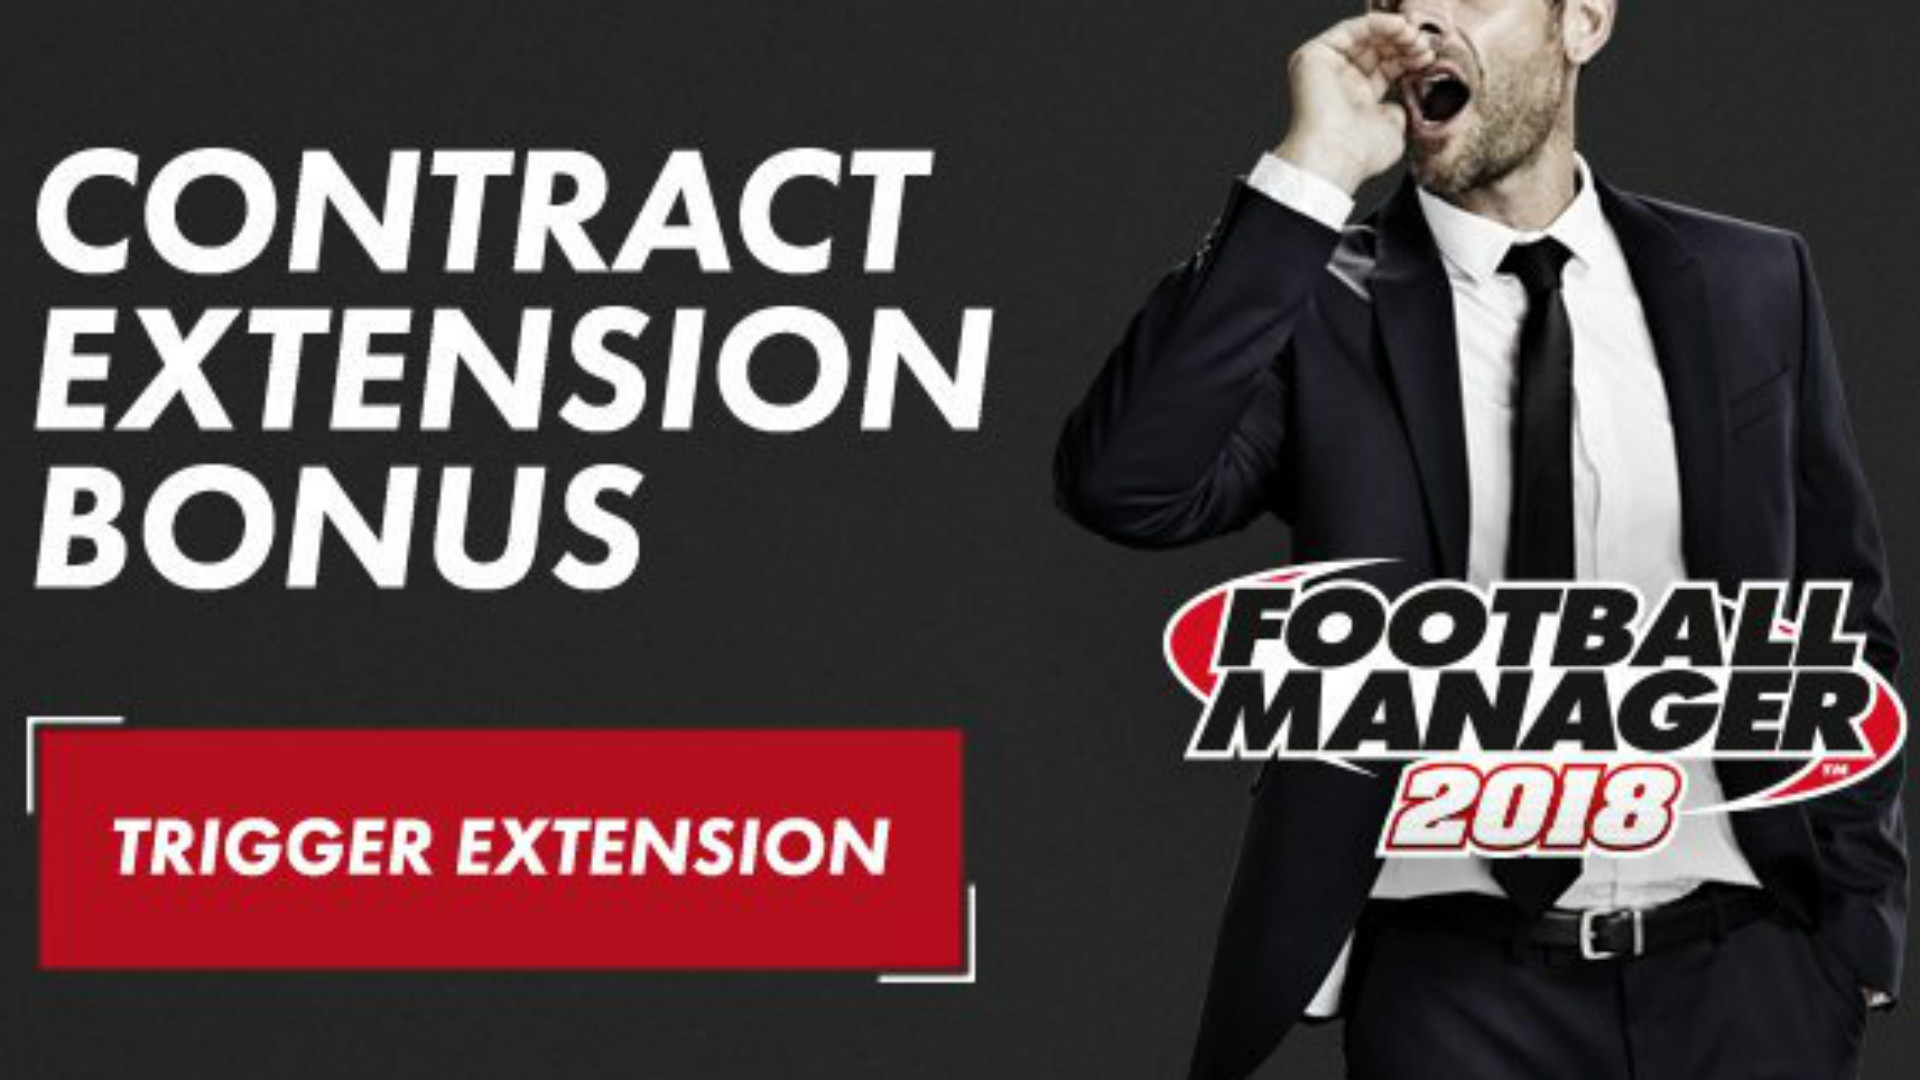 Football Manager 2018 contract extension bonus